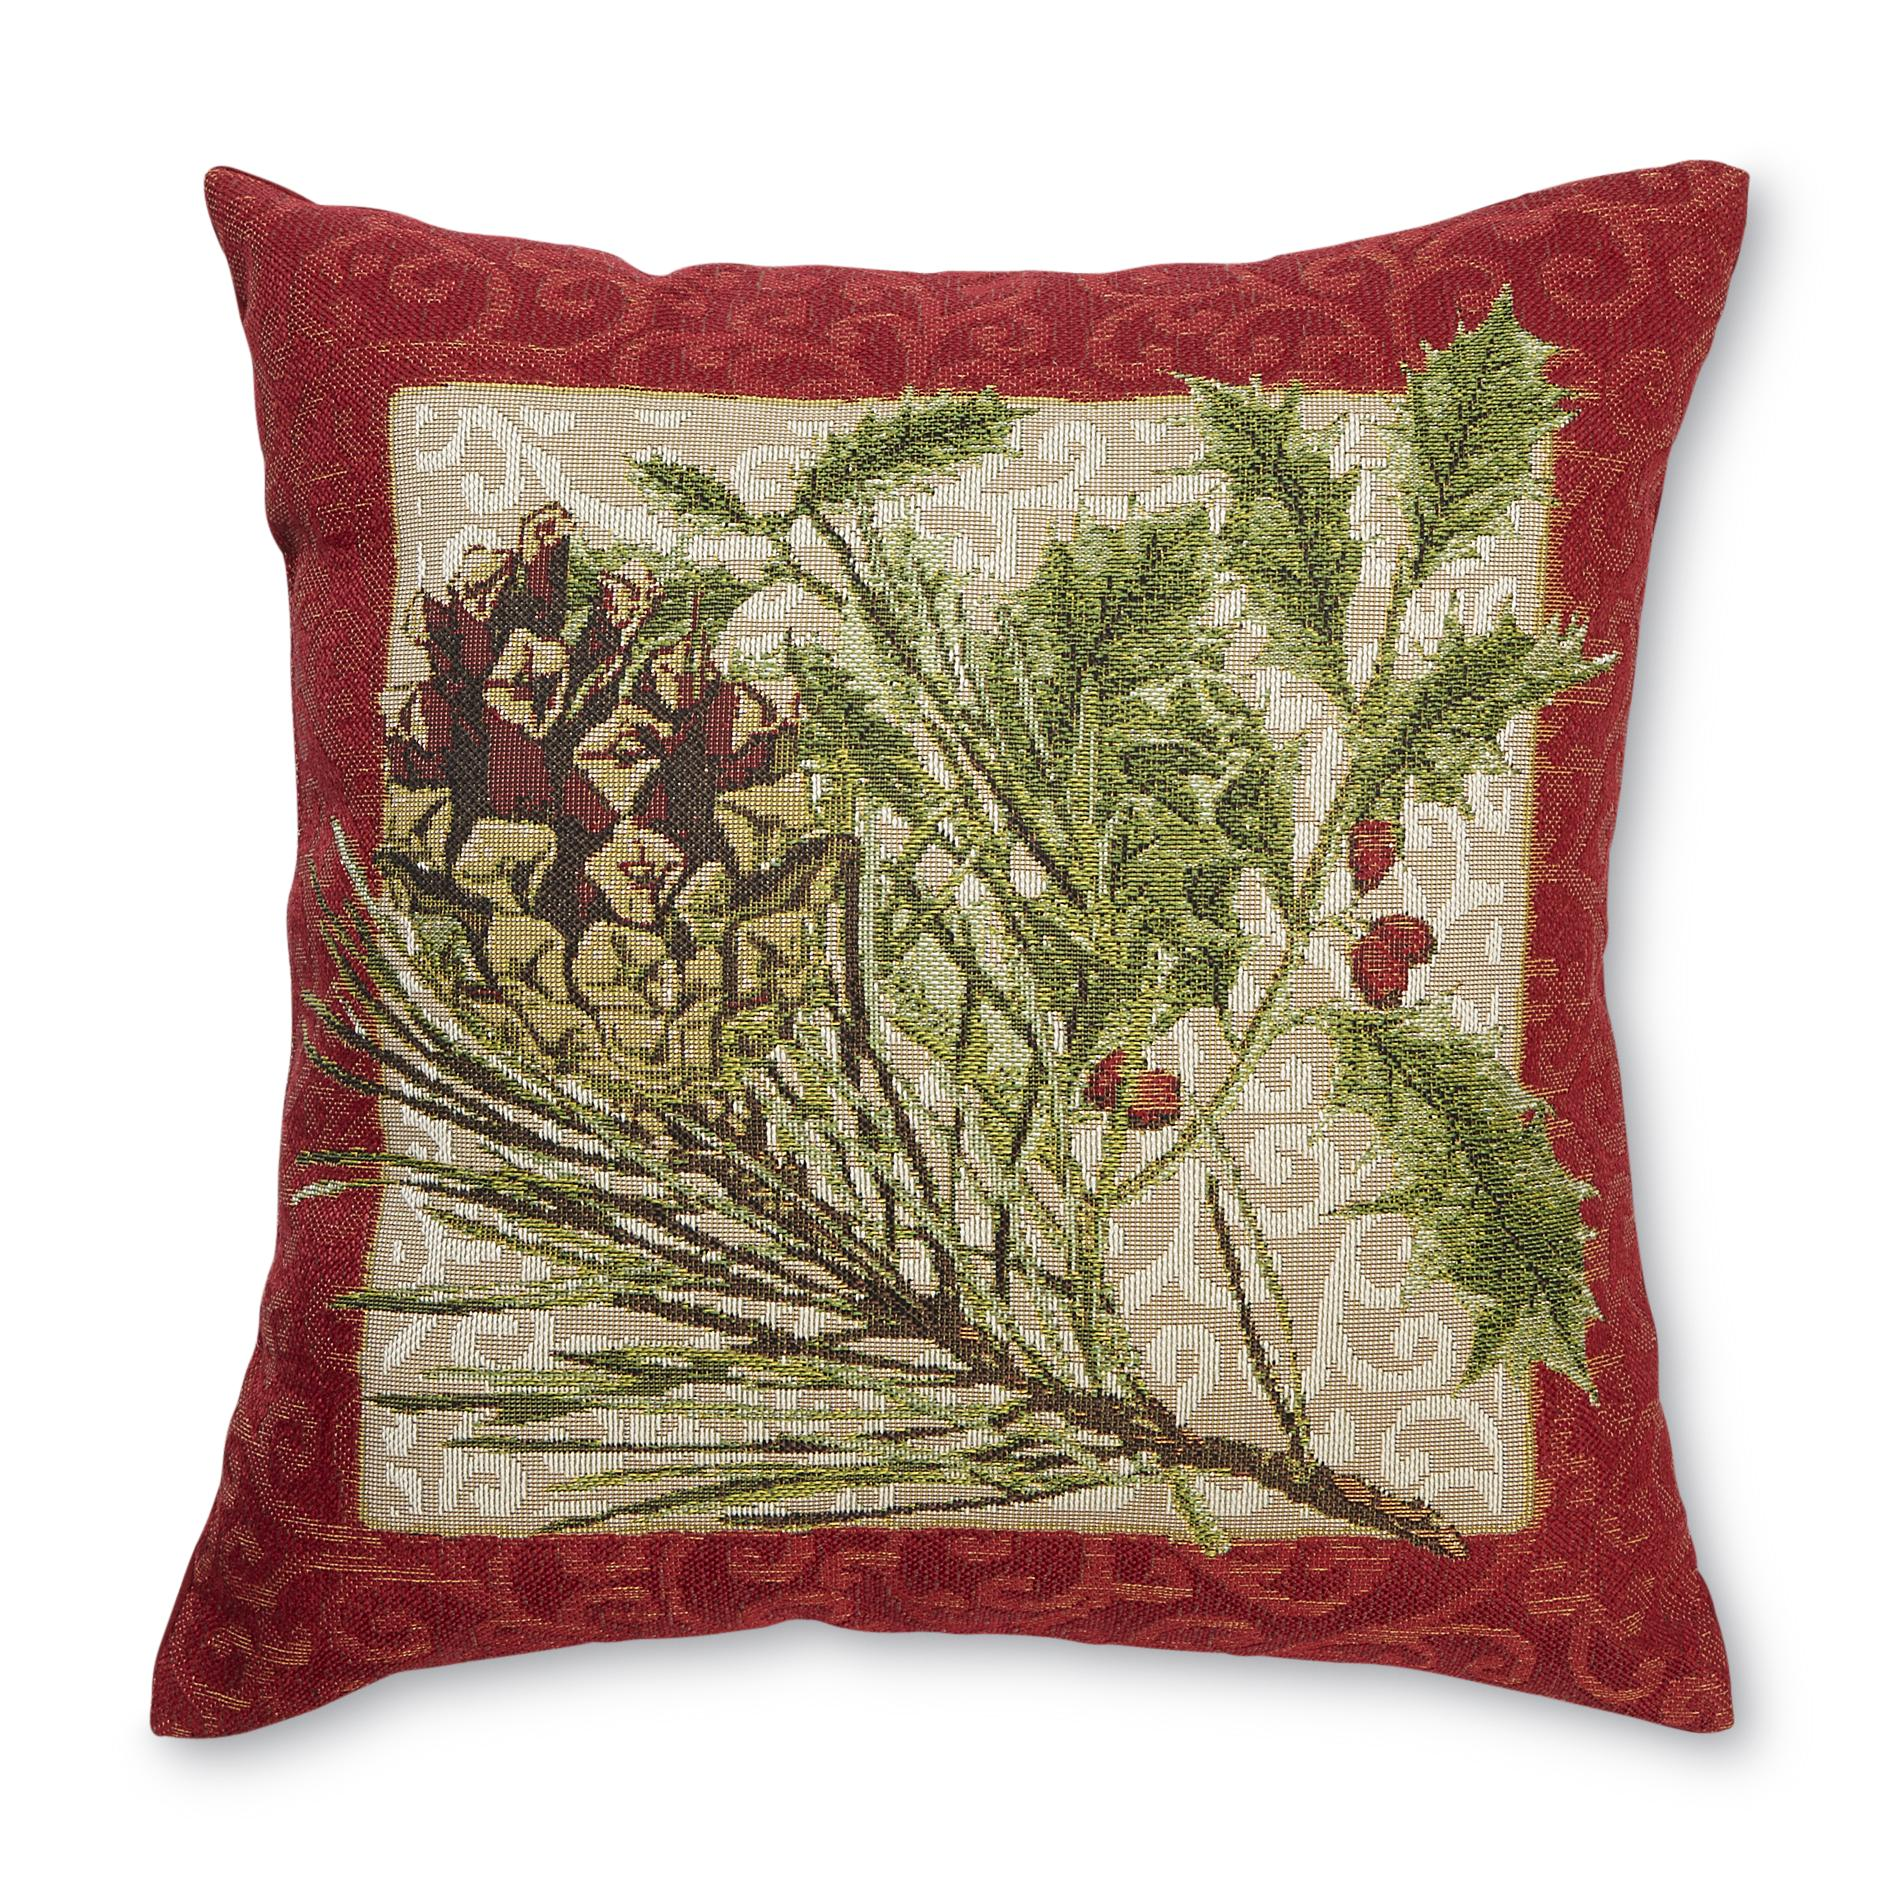 Decorative Pillows Kmart : Seasonal Decorative Throw Pillow - Pine & Ivy - Home - Home Decor - Pillows, Throws & Slipcovers ...